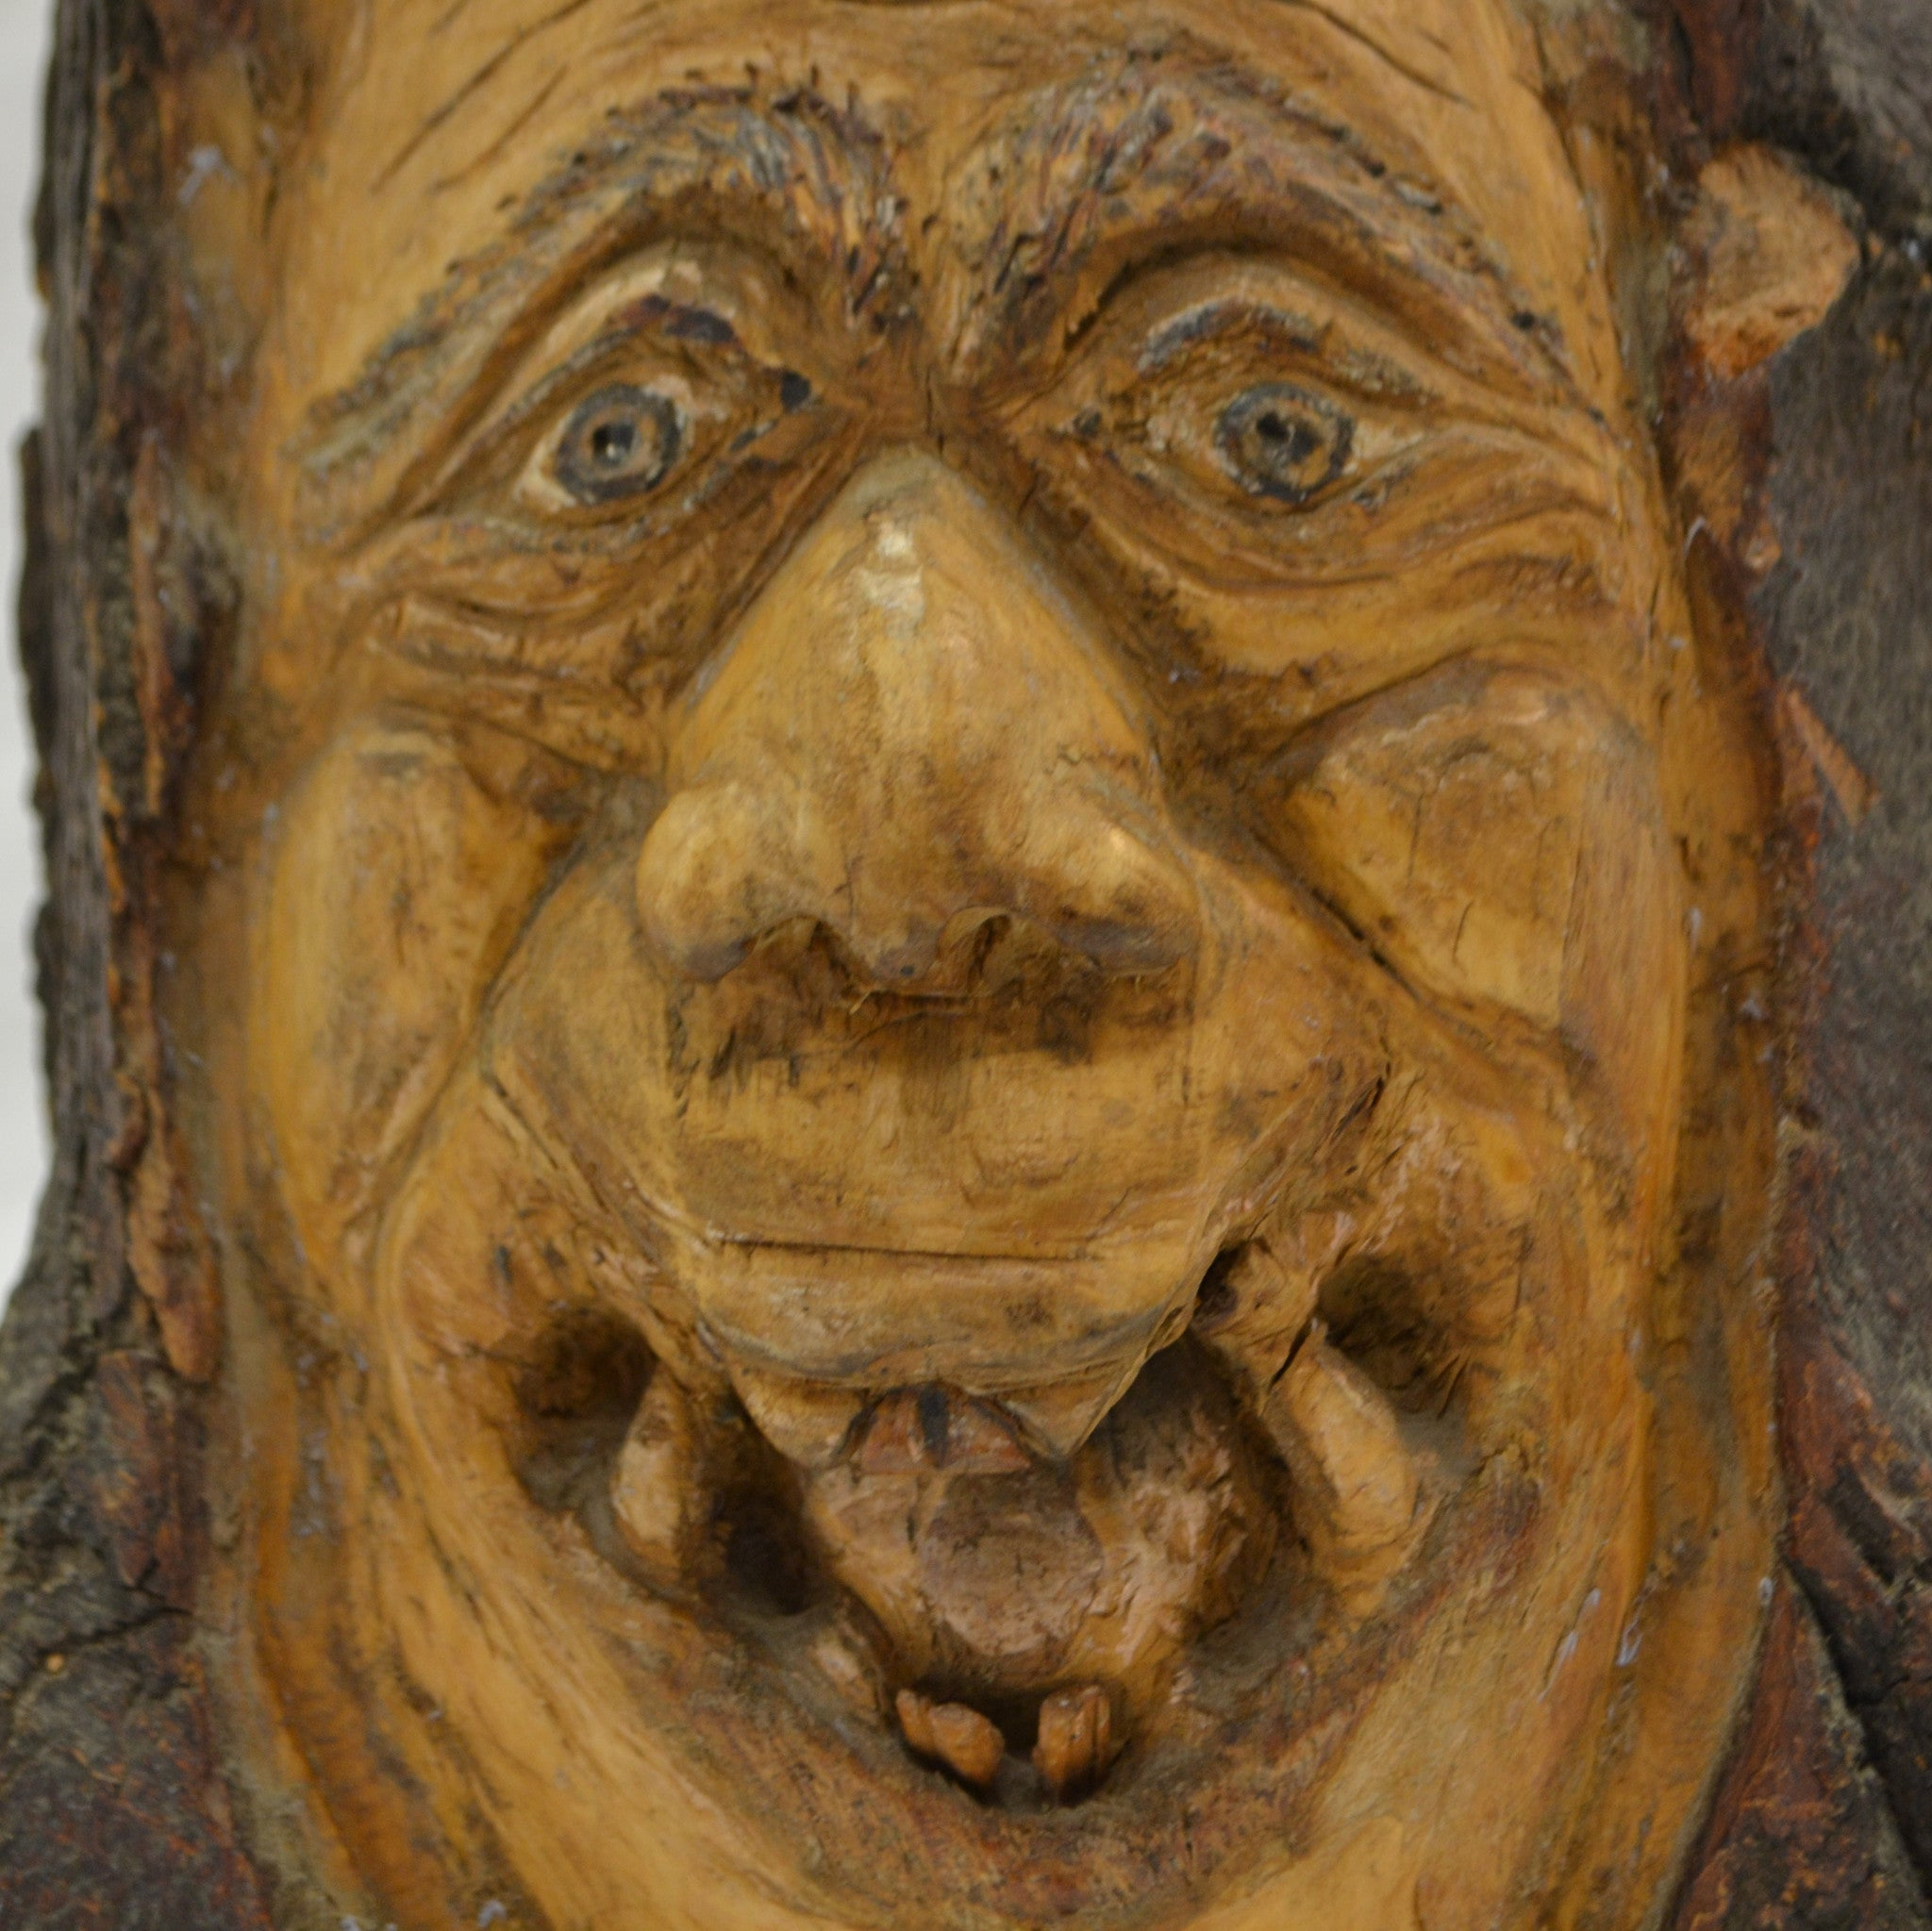 Stump man face folk art carving